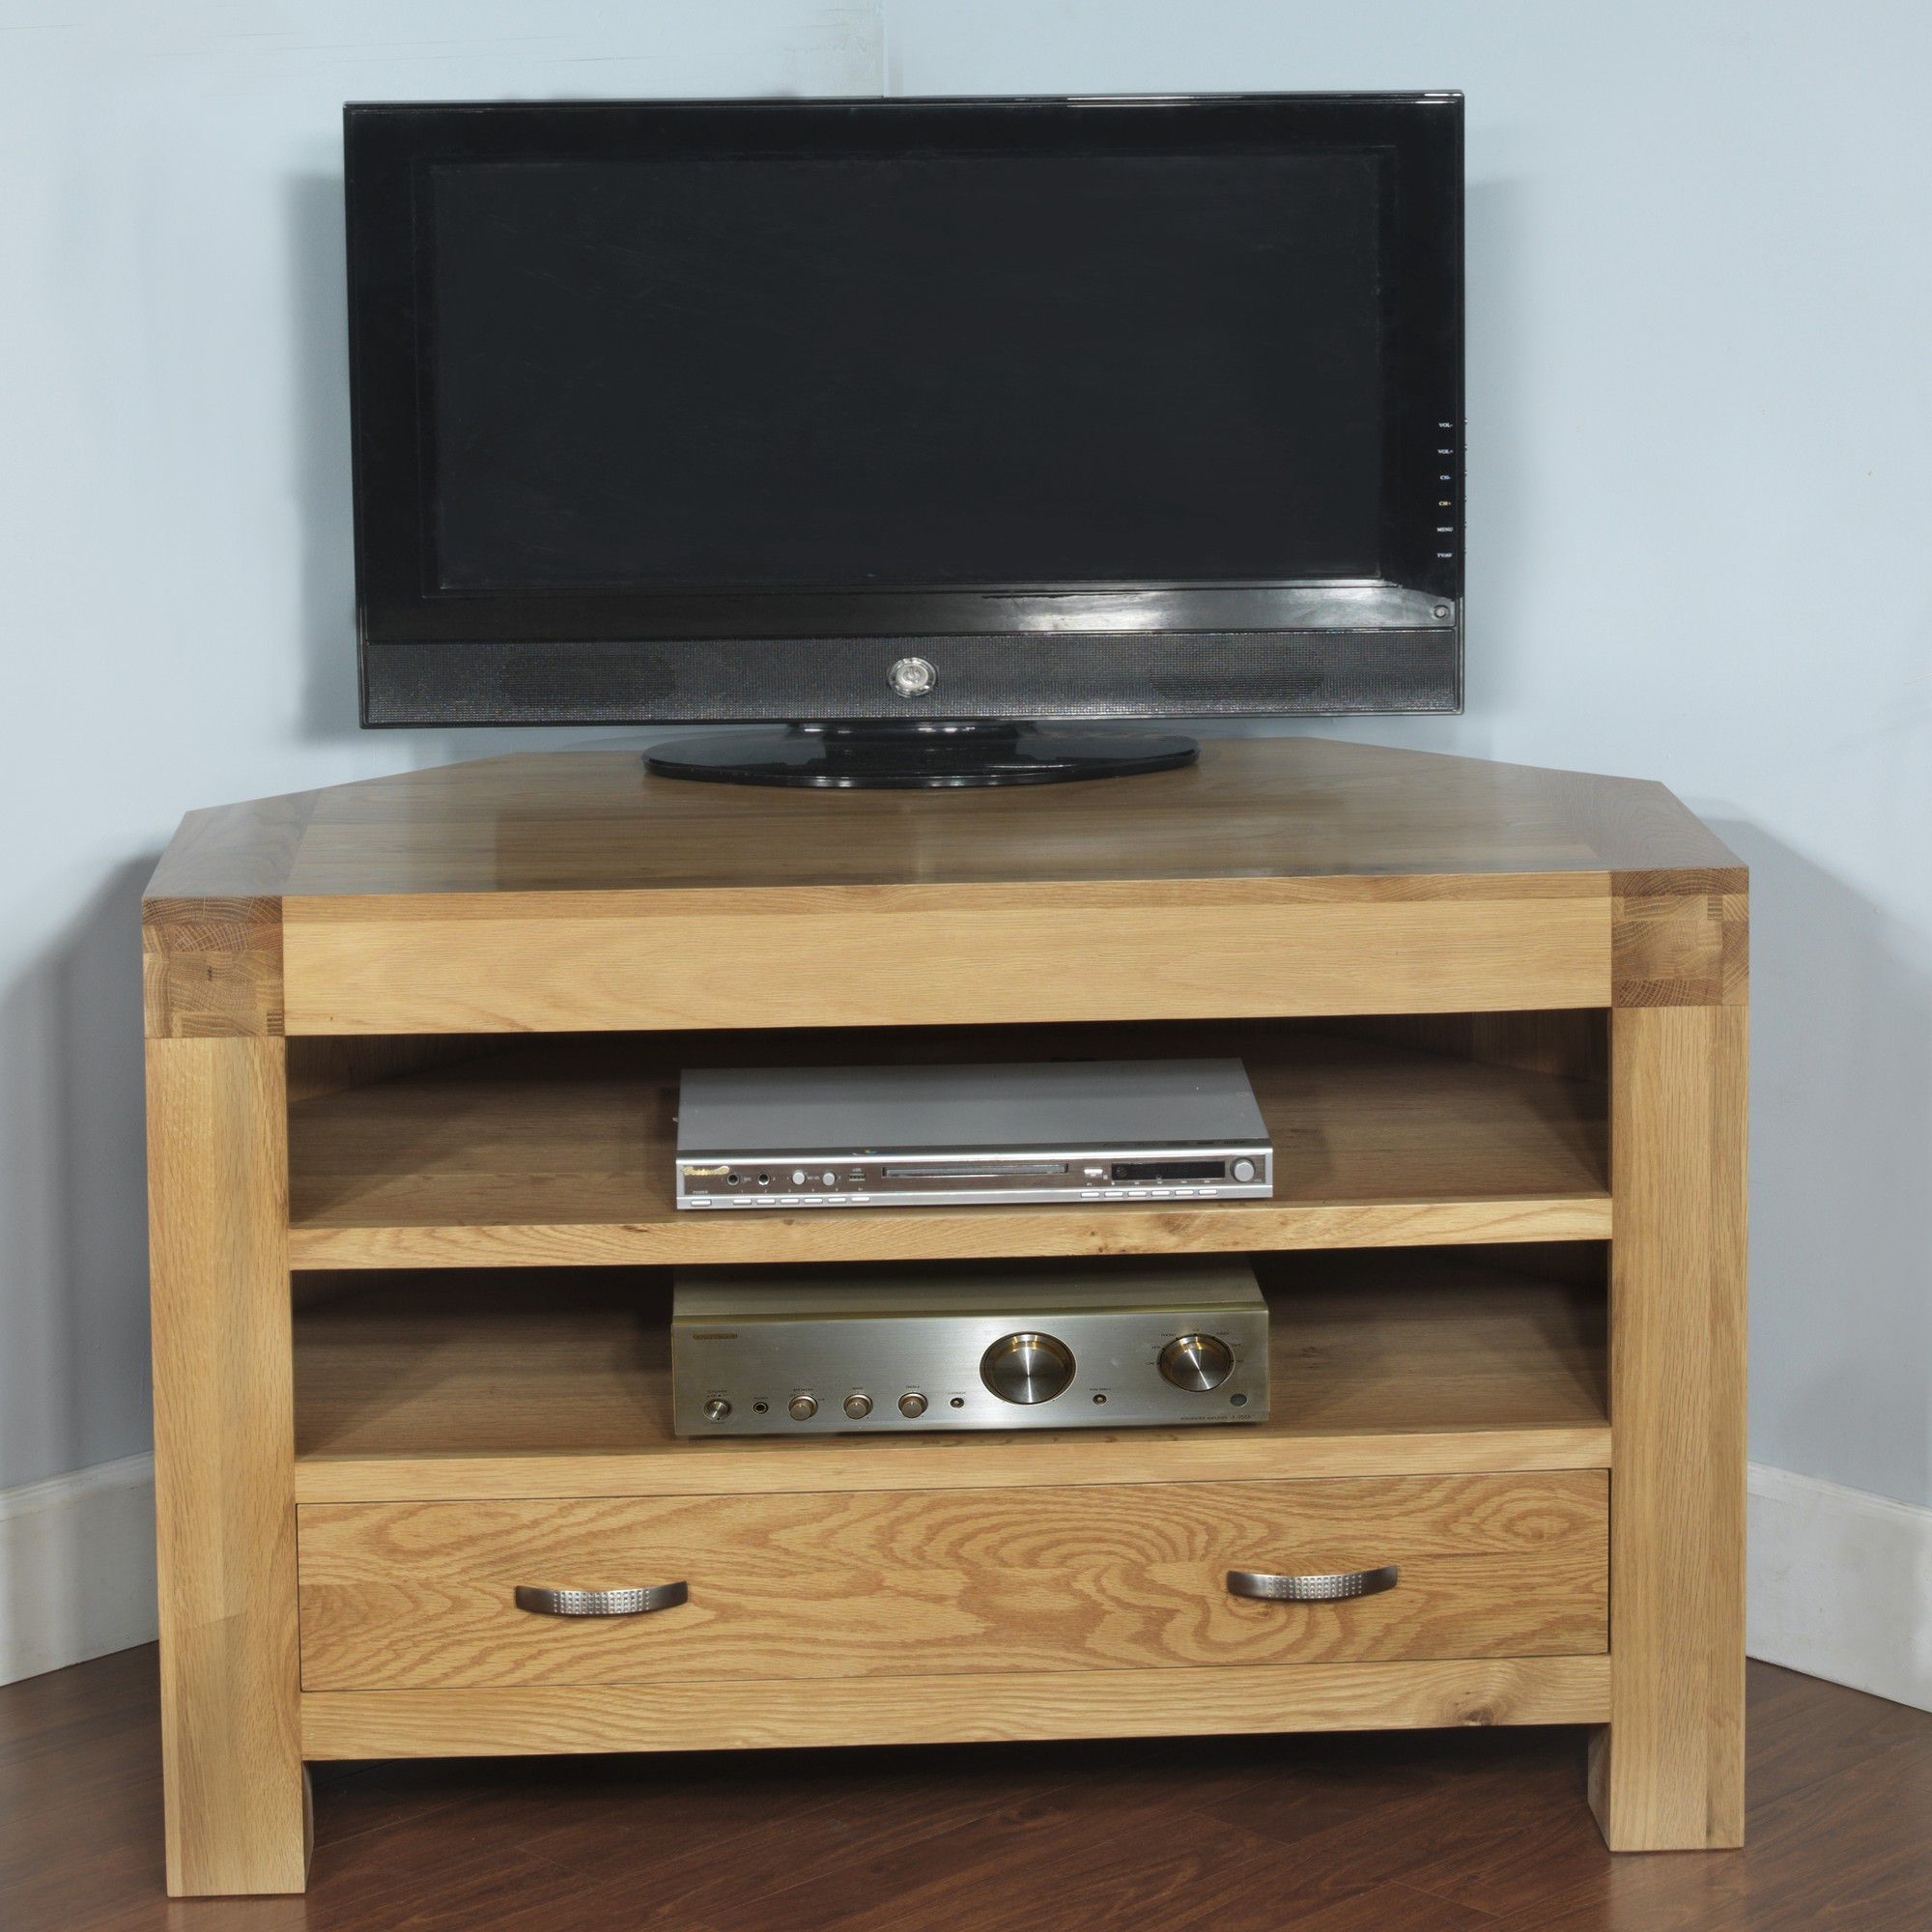 Hawkshead Rustic Oak Blonde Corner TV Cabinet at Tesco Direct